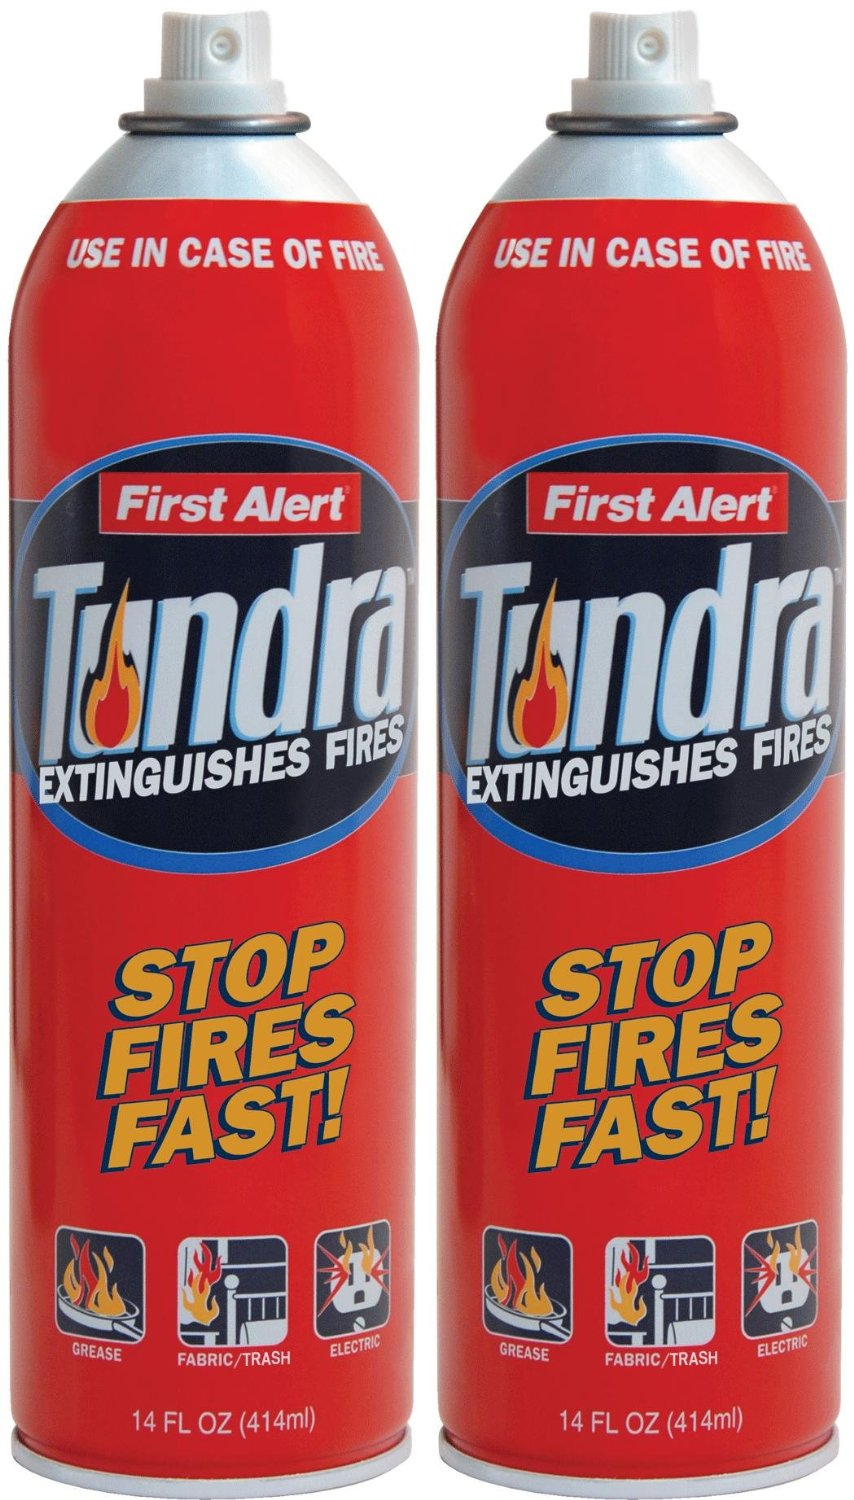 First Alert Tundra Fire Extinguishers